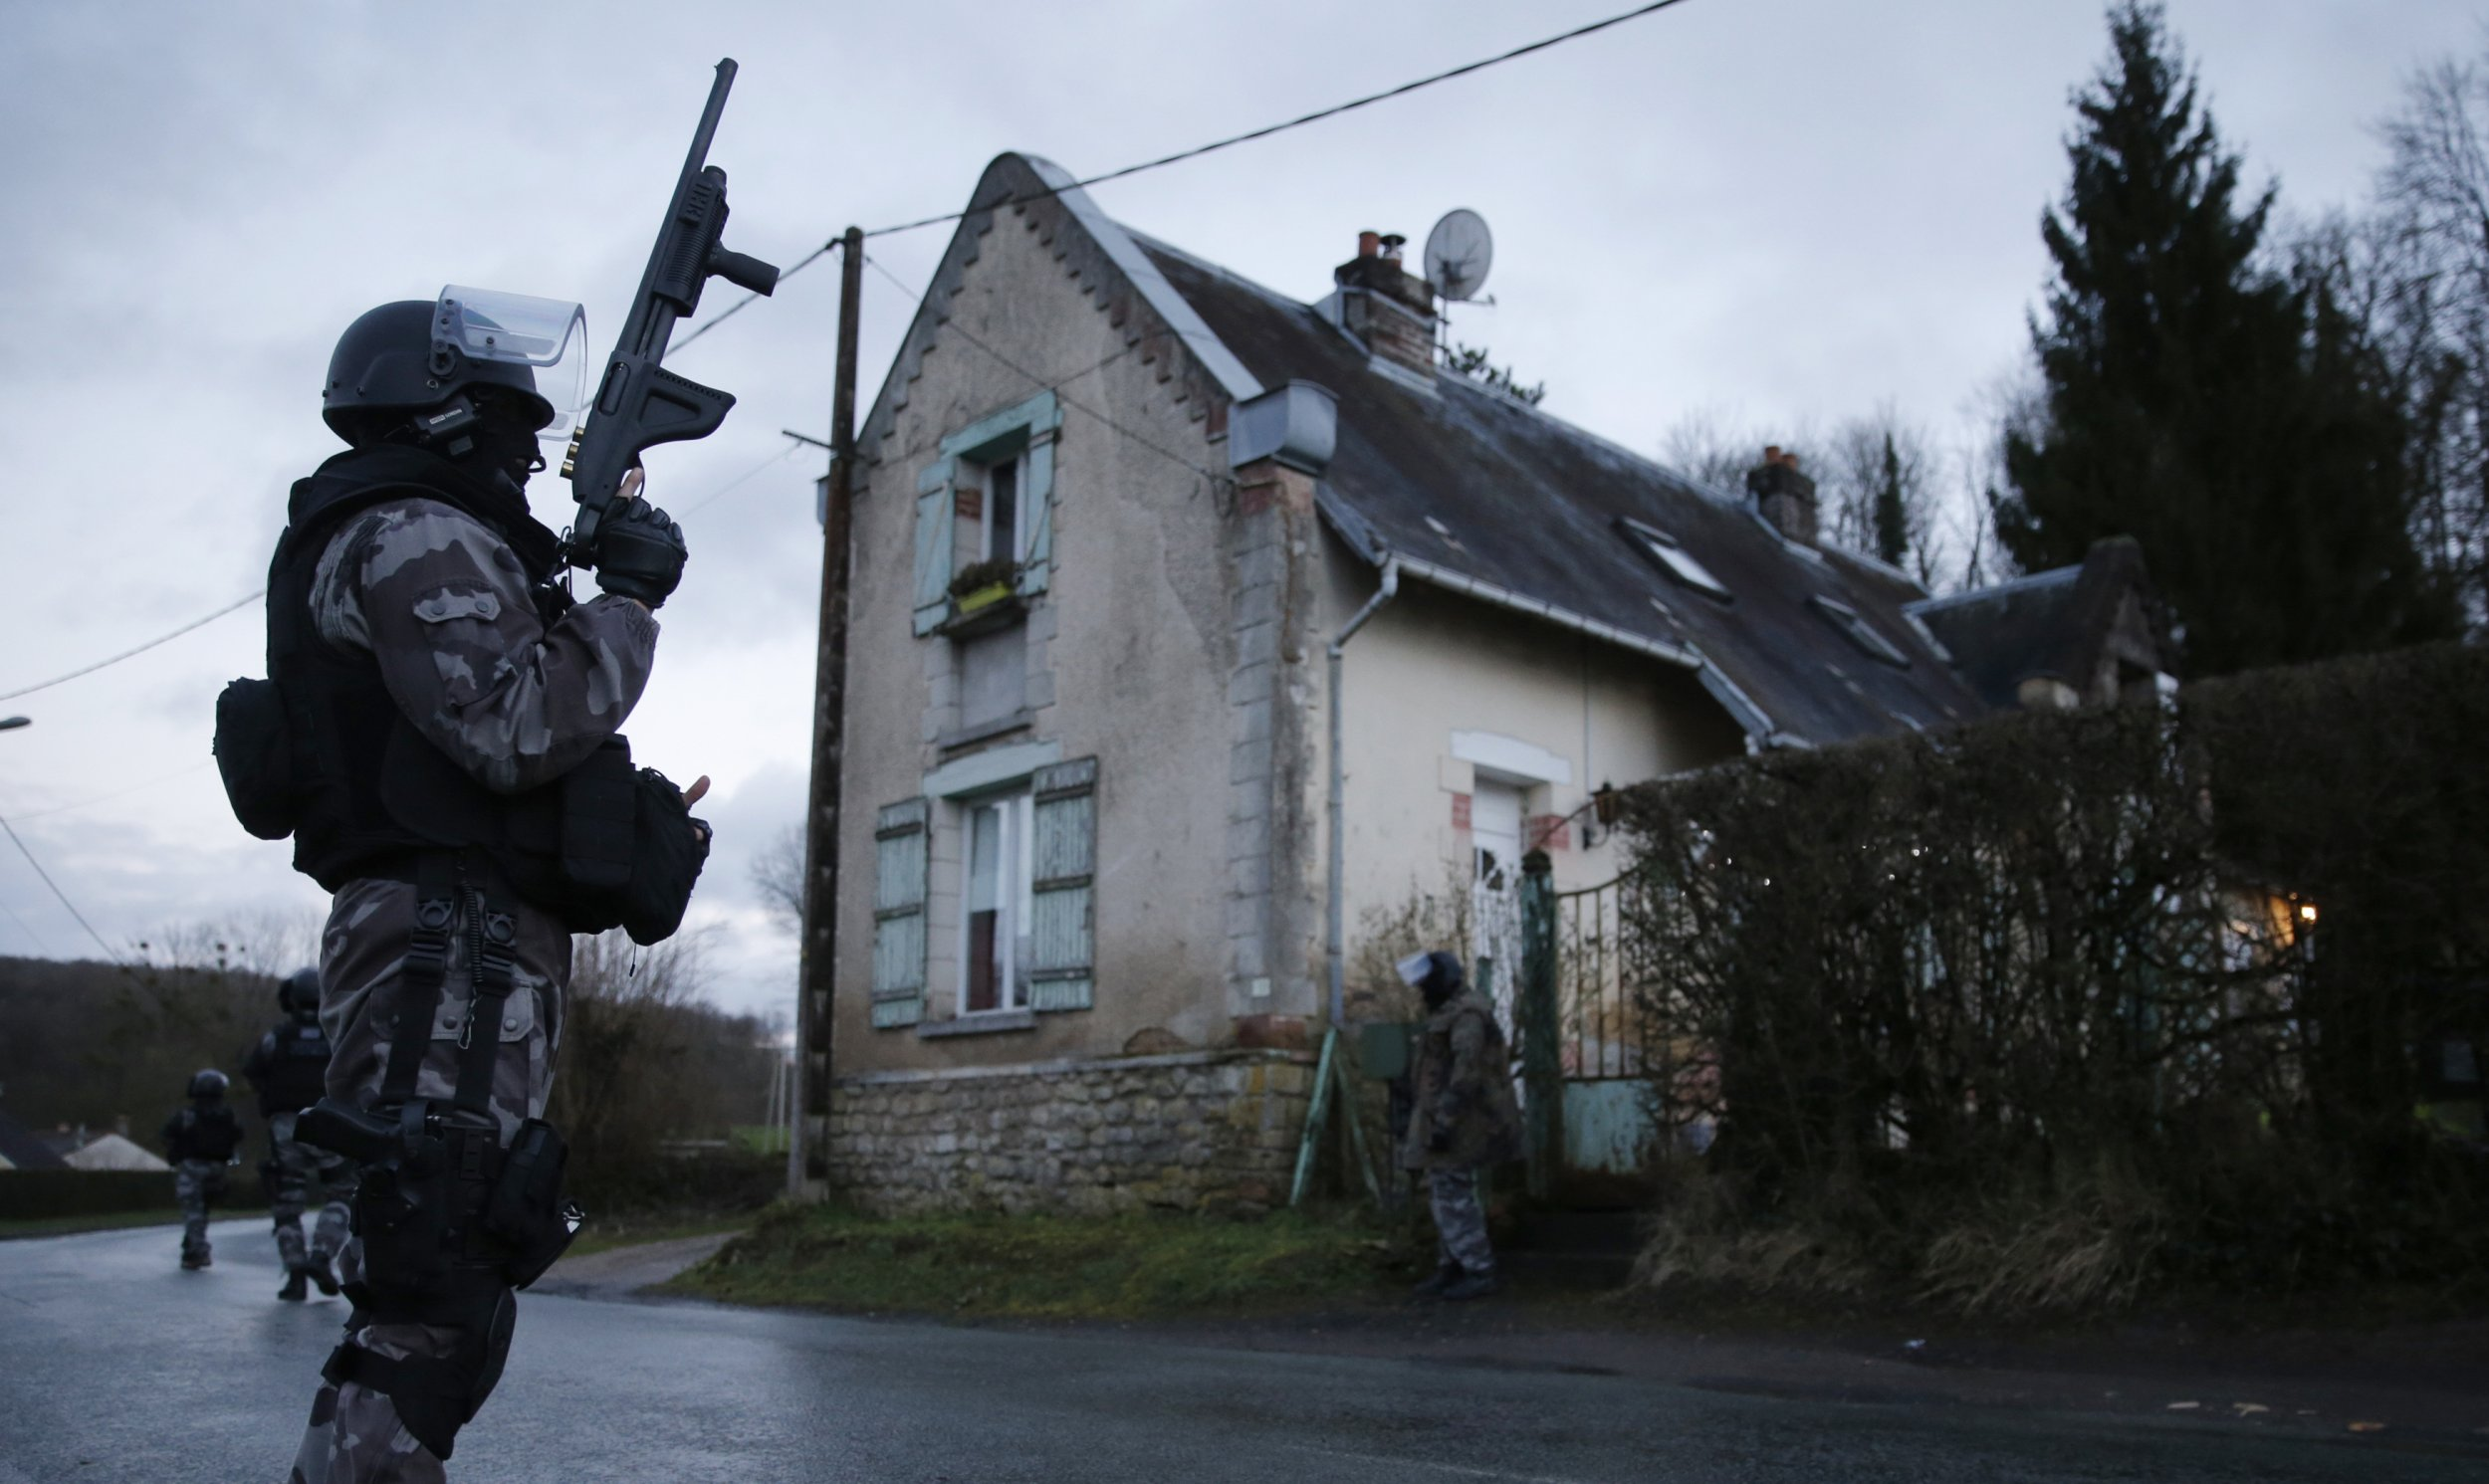 French Police Converge on Villages as Charlie Hebdo